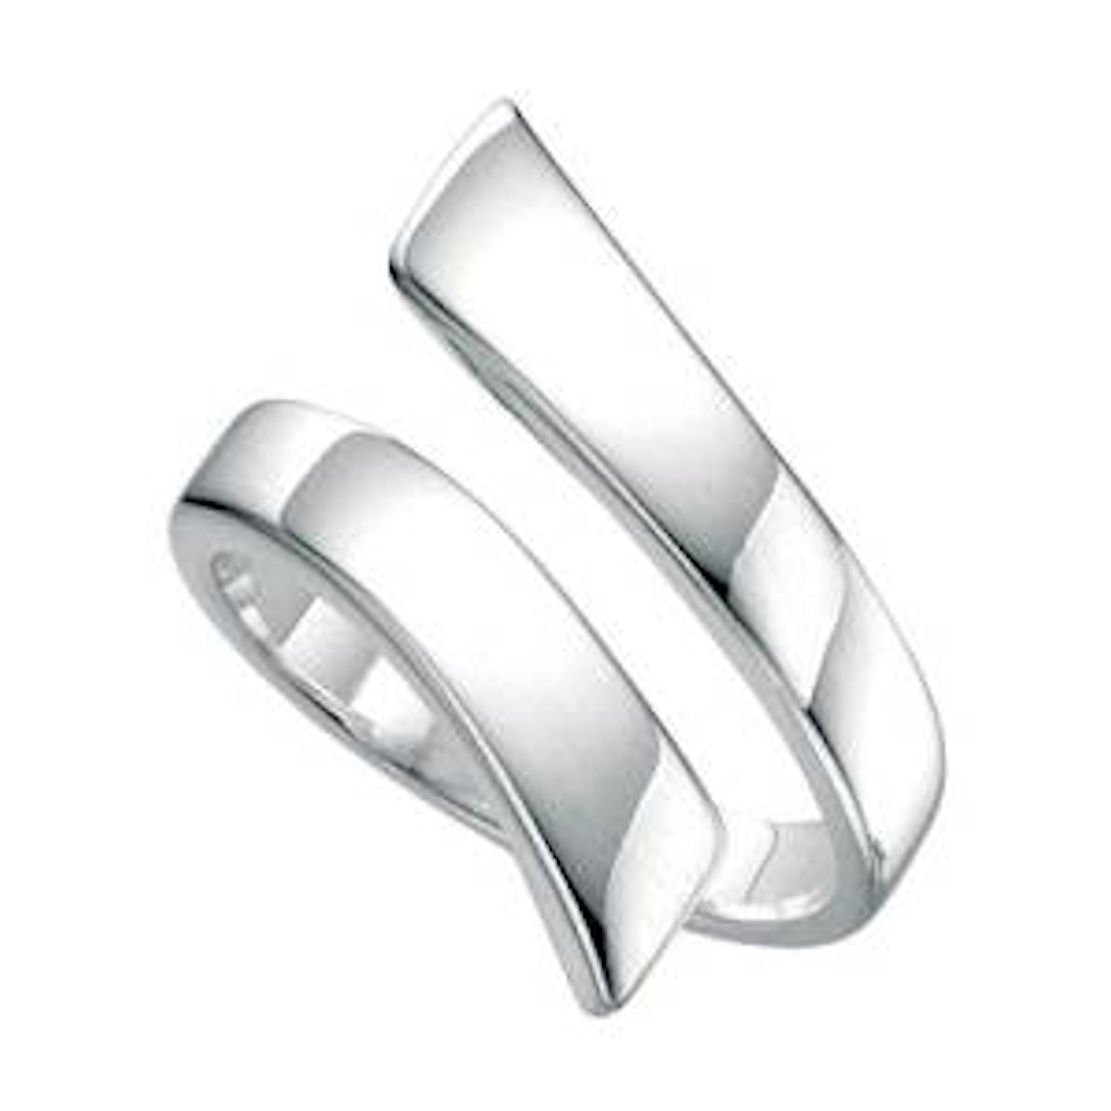 Adjustable Thumb Ring Solid Silver Sturdy Can Be Set Large Med or Small